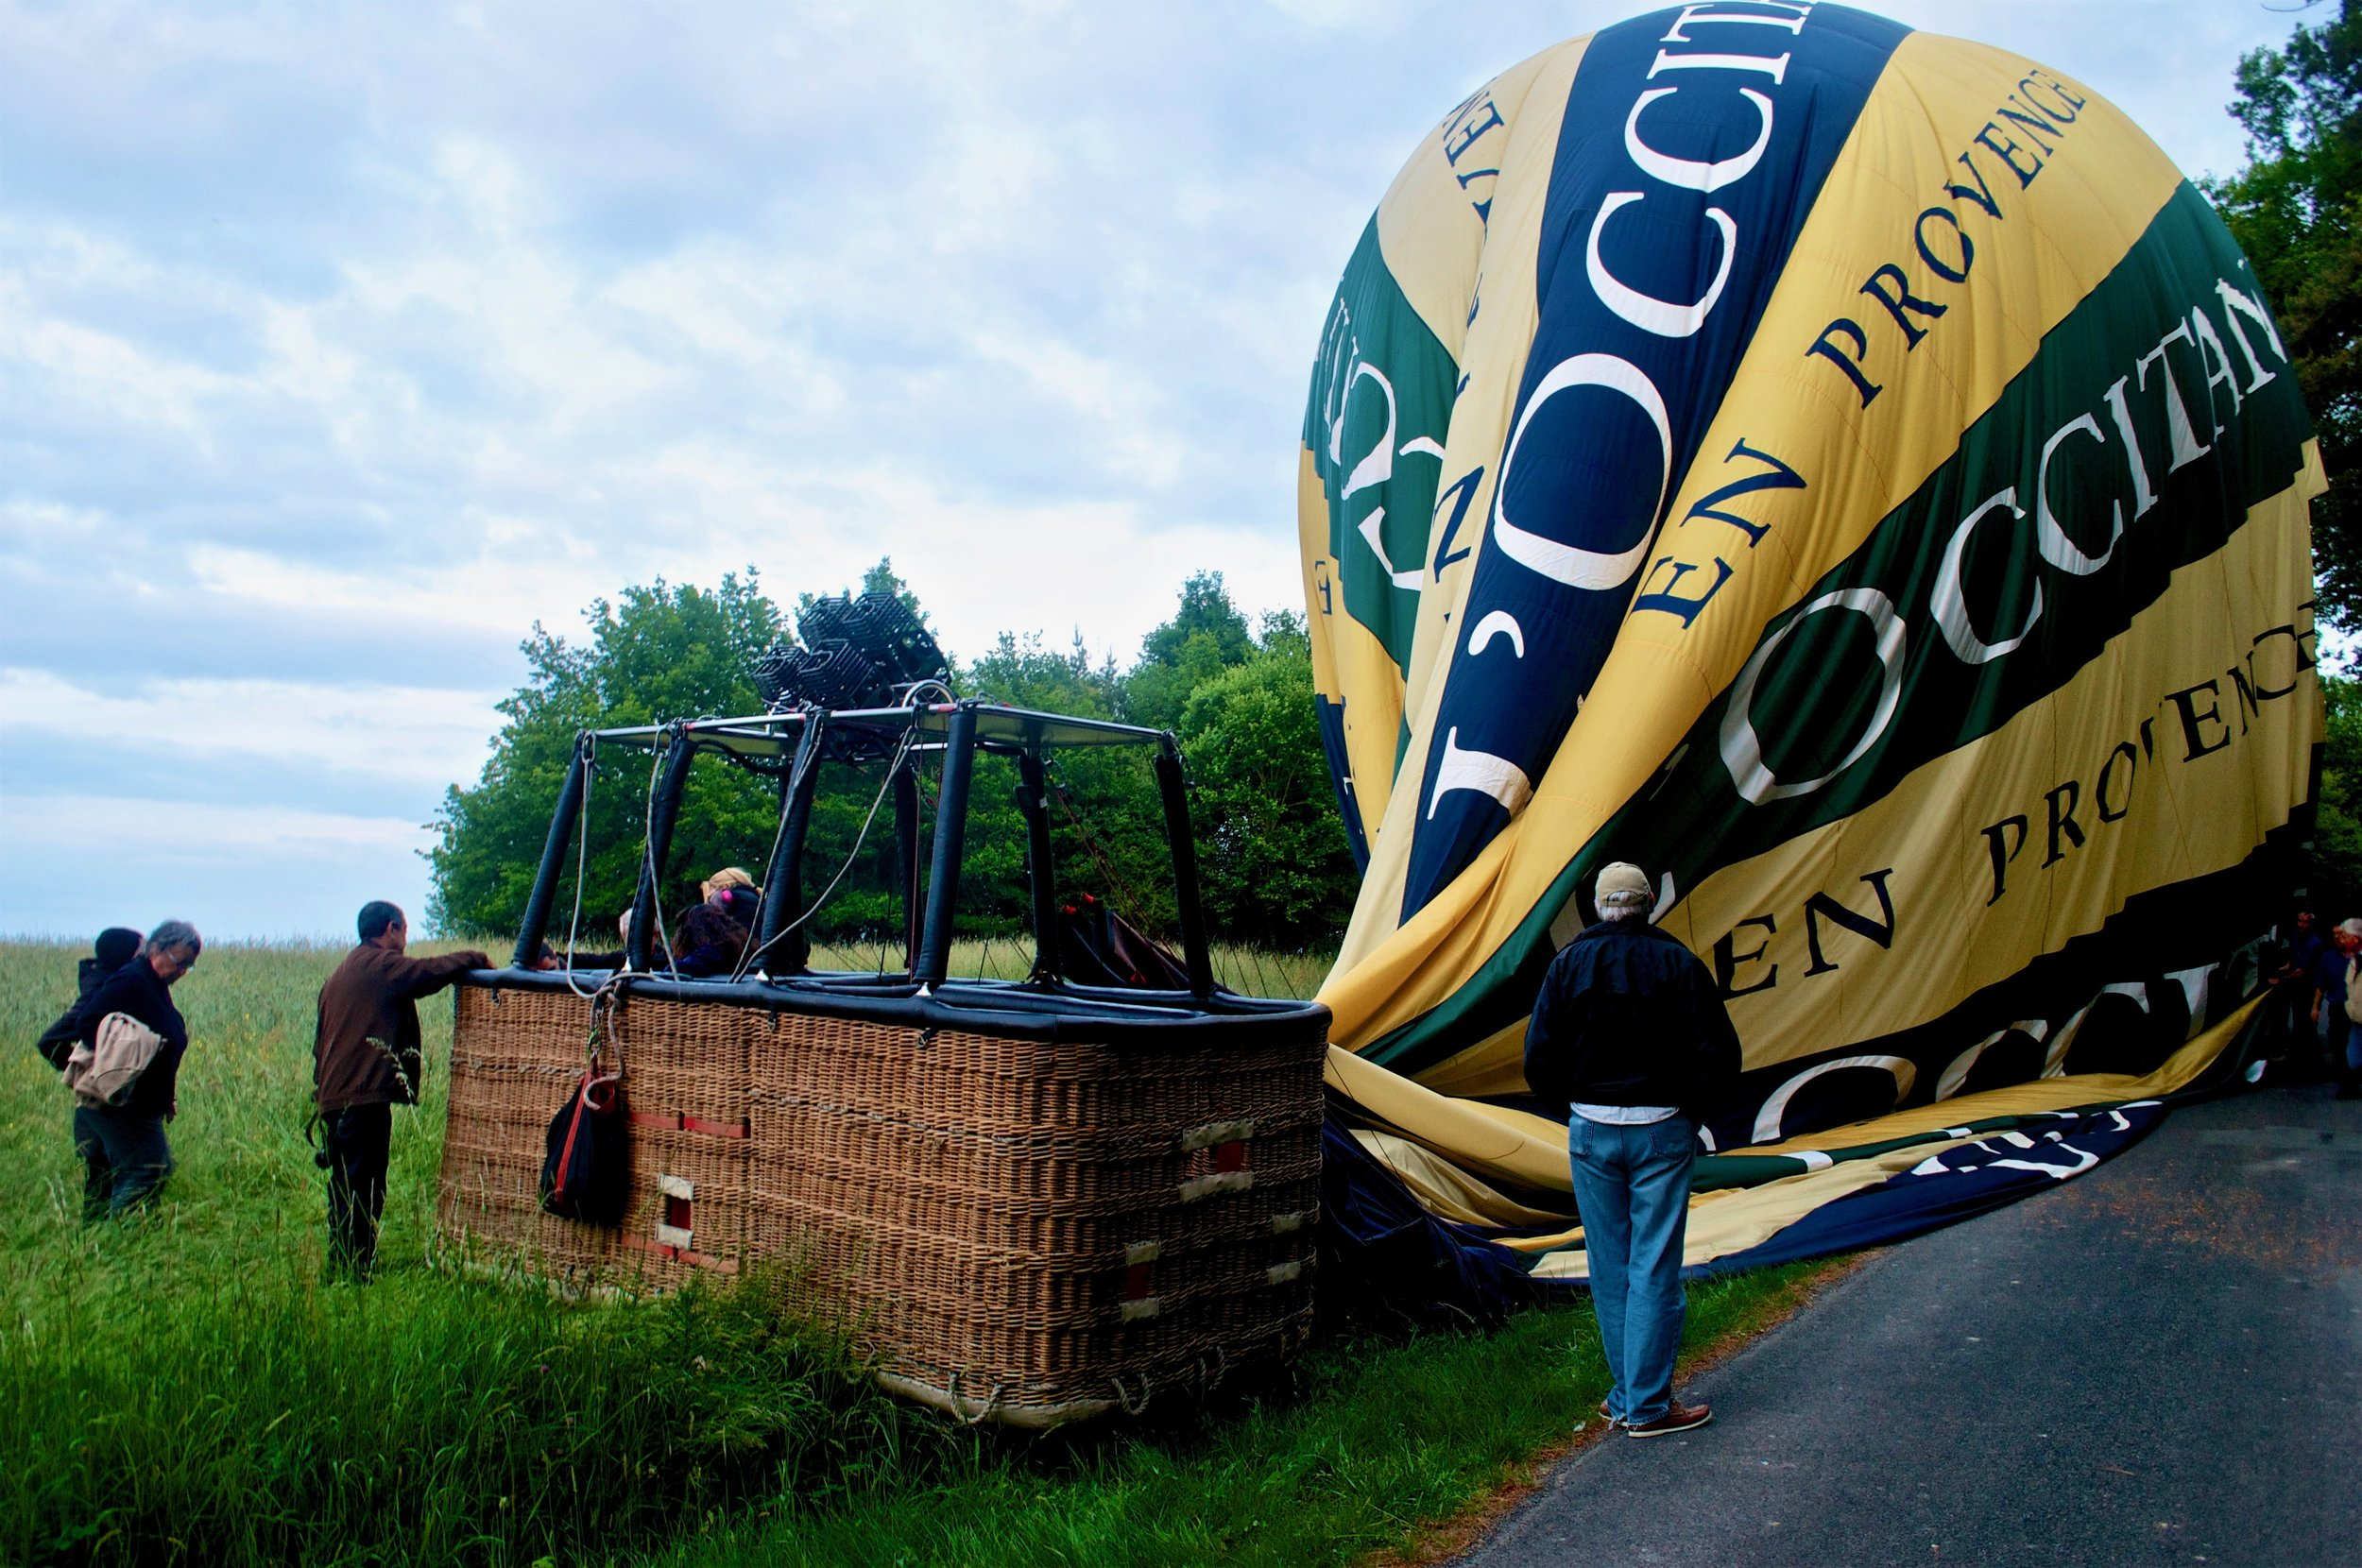 Loire Valley - Hot Air Balloon Ride over Loire Valley - Ultimate Northern France Itinerary